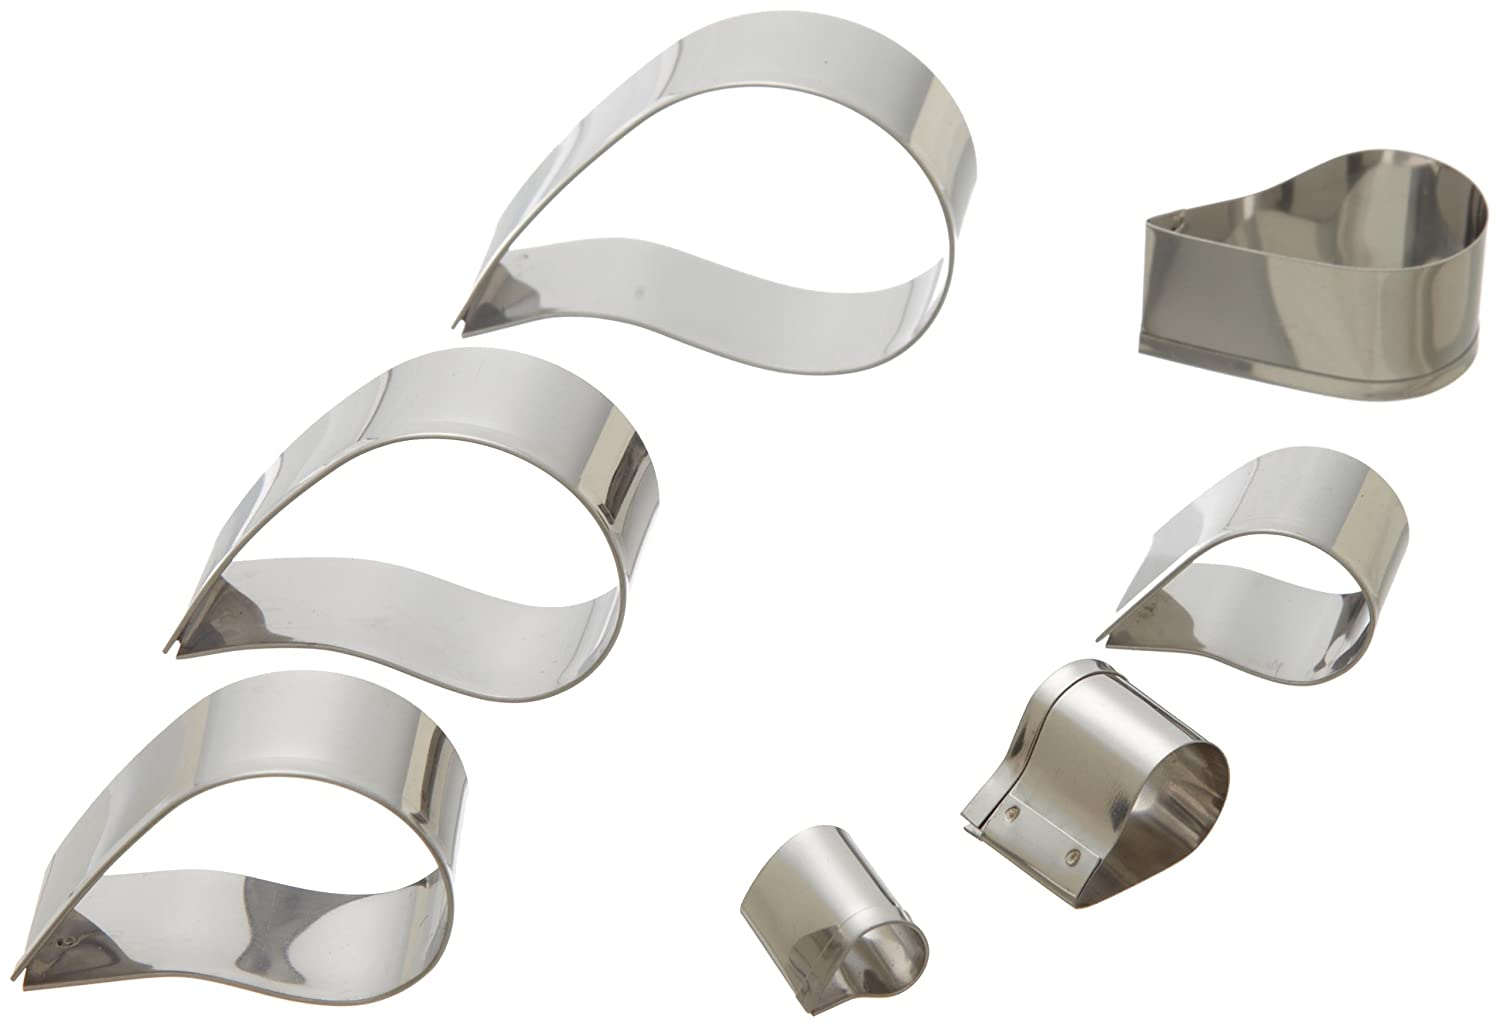 Ateco 5267 Plain Edge Comma Cutters in Graduated Sizes, Stainless Steel, 7 Pc Set